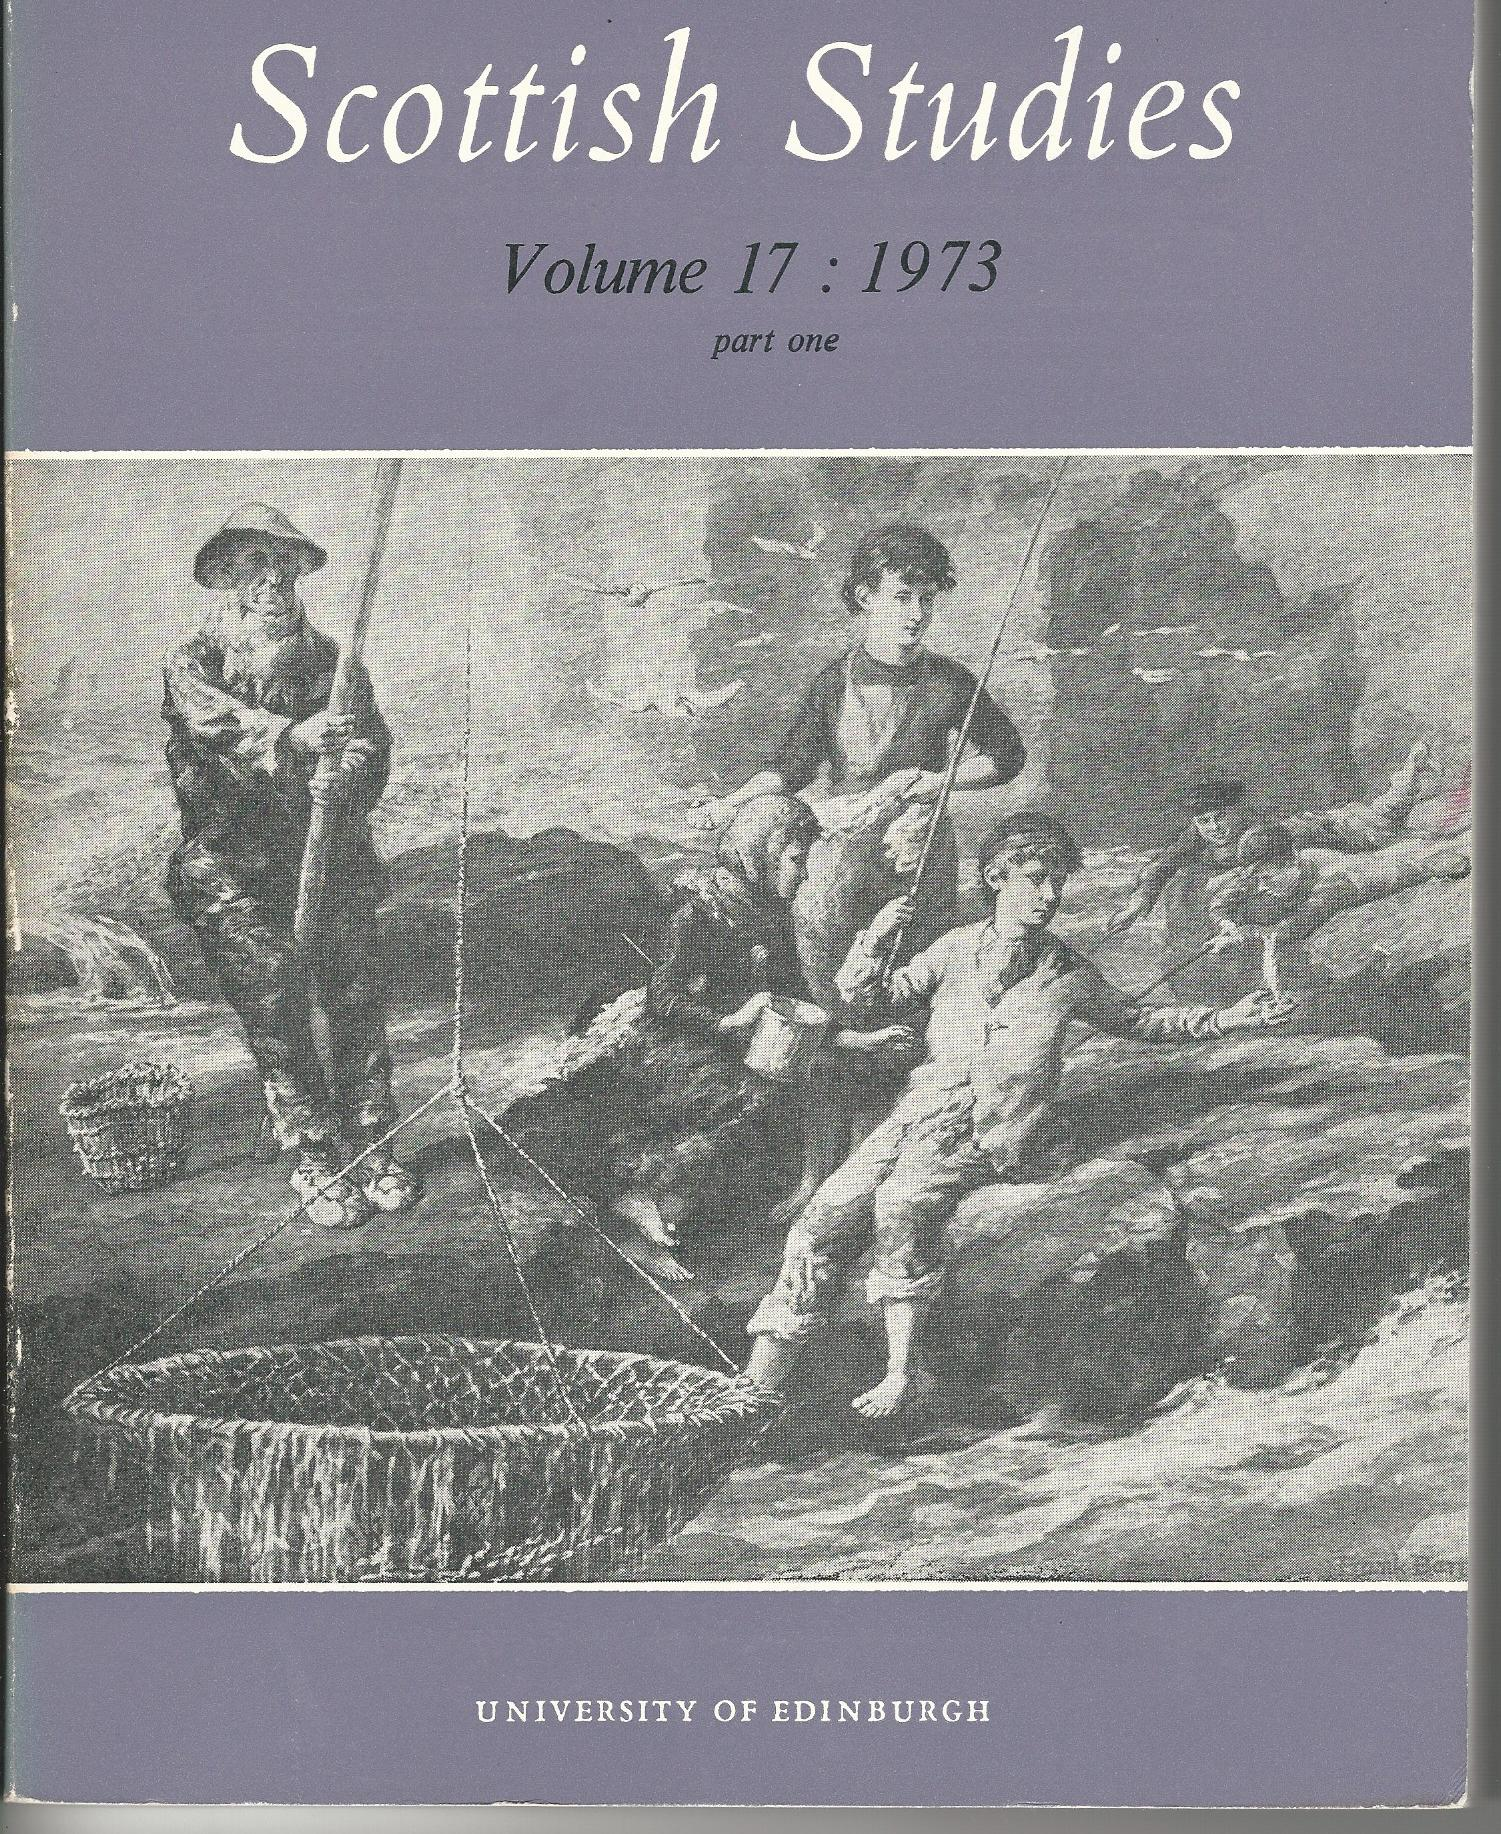 Image for Scottish Studies Vol. 17 Part One 1973.